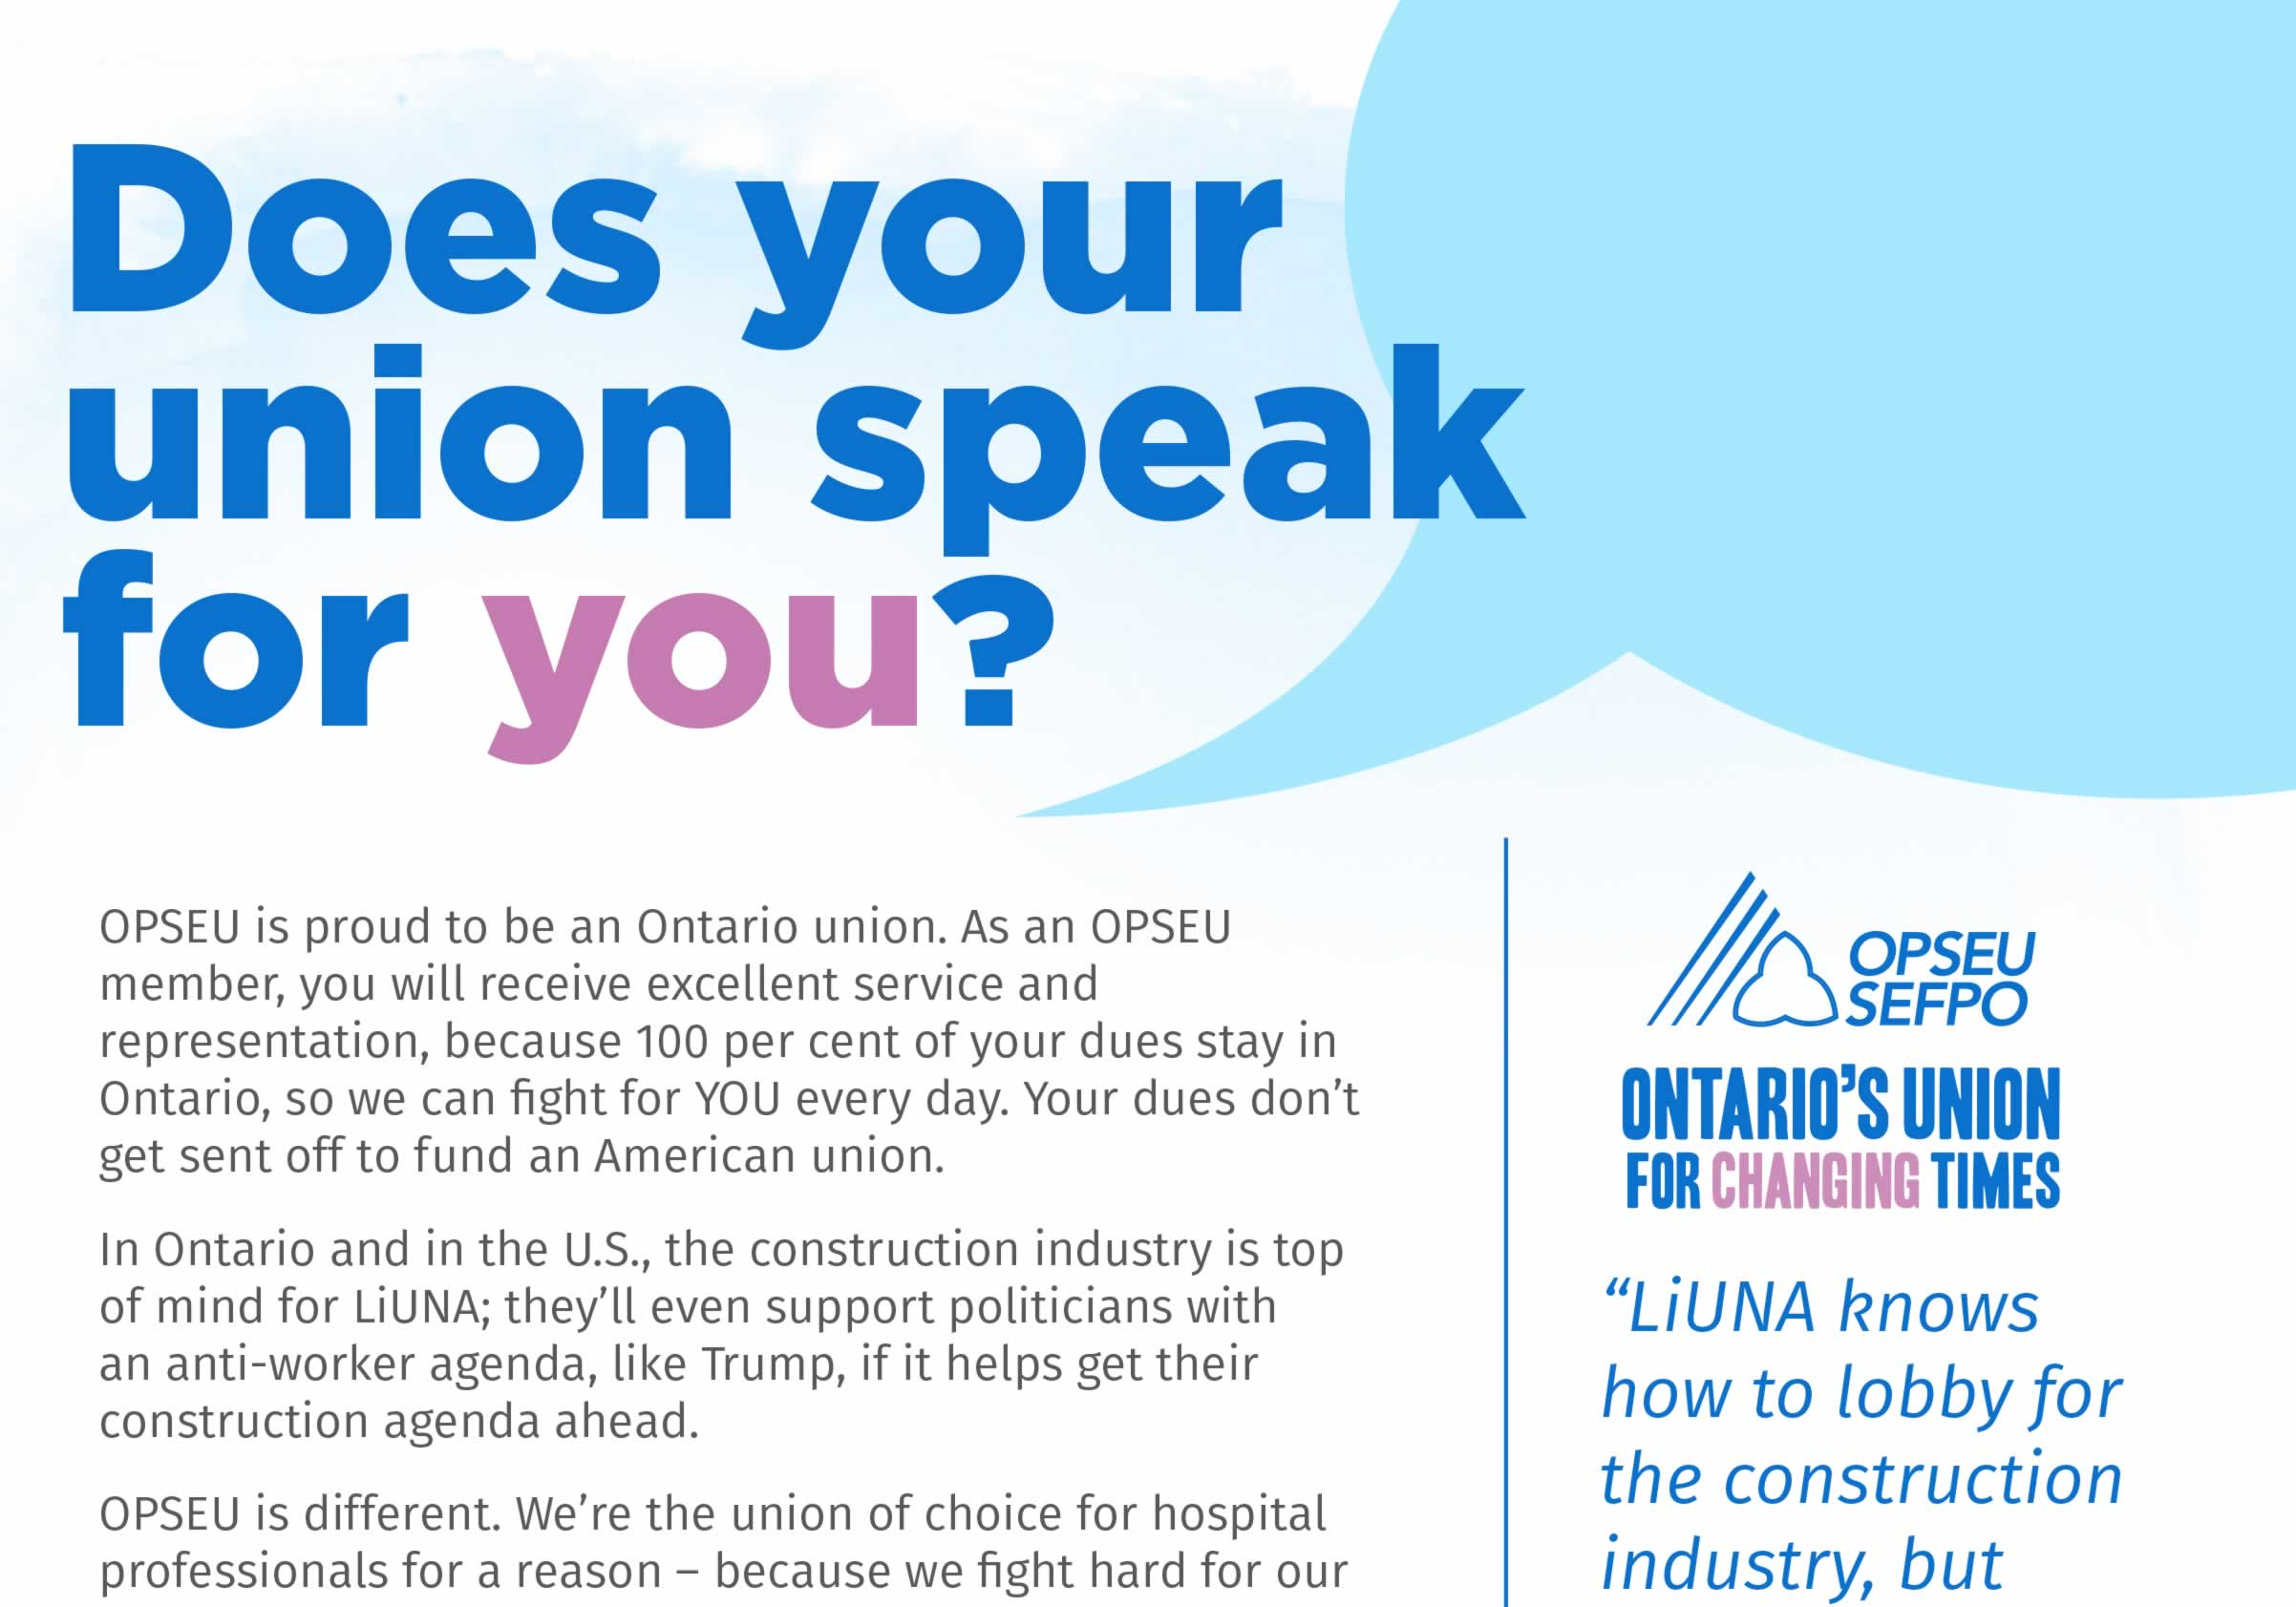 Does your union speak for you?